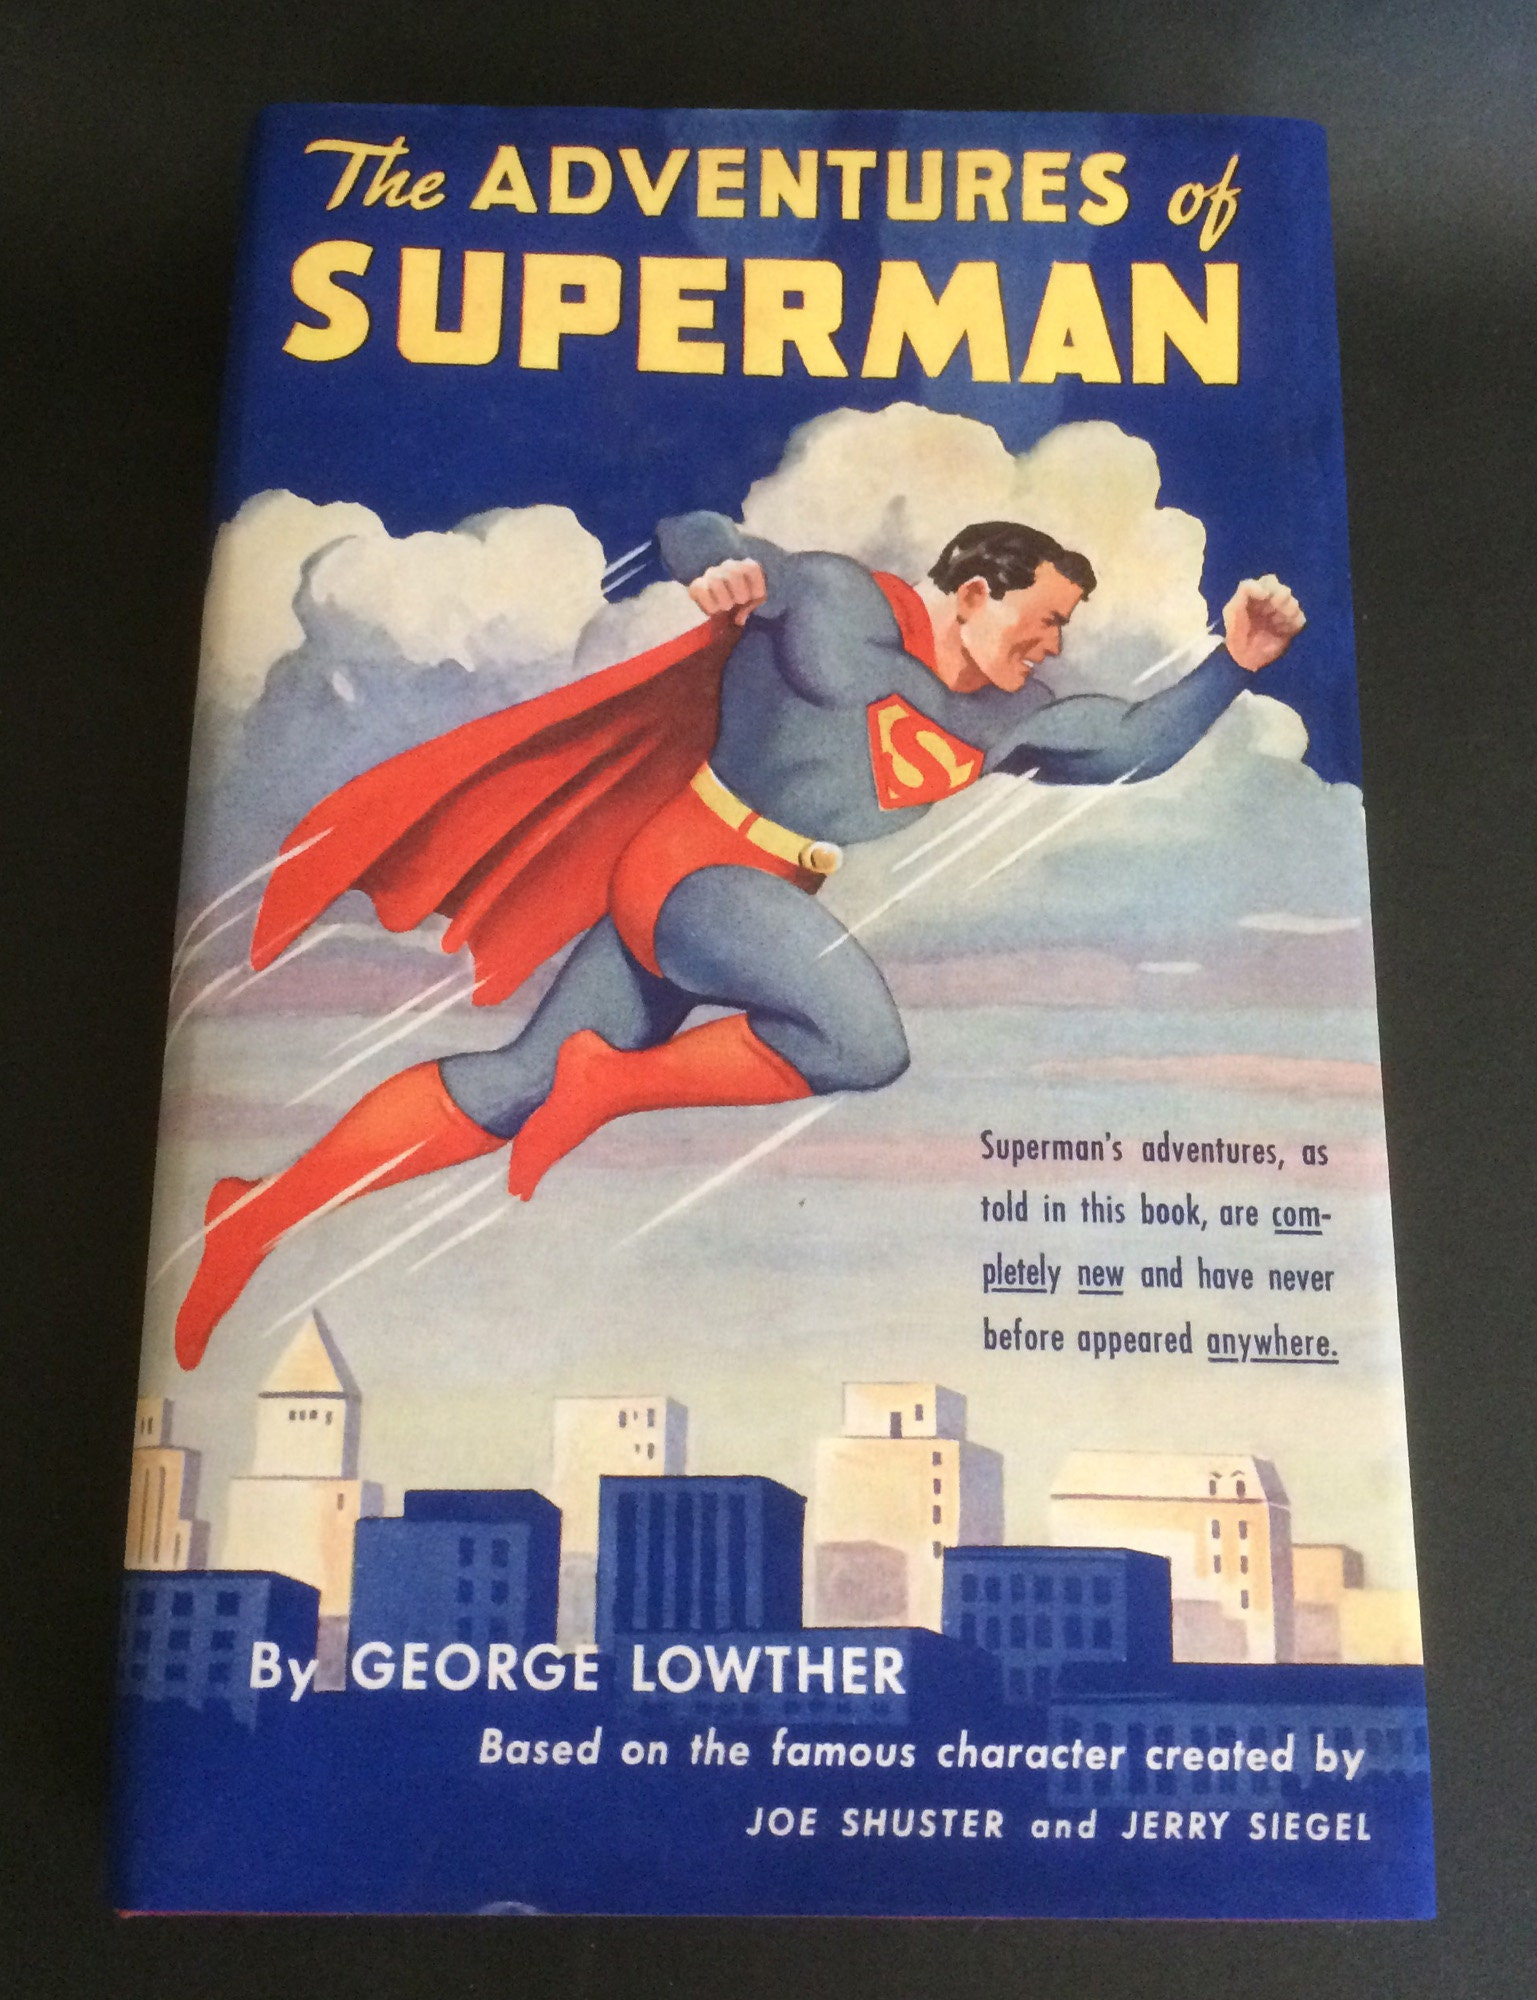 1942 The Adventures Of Superman 1st Edition/1st Printing George Lowther with DJ